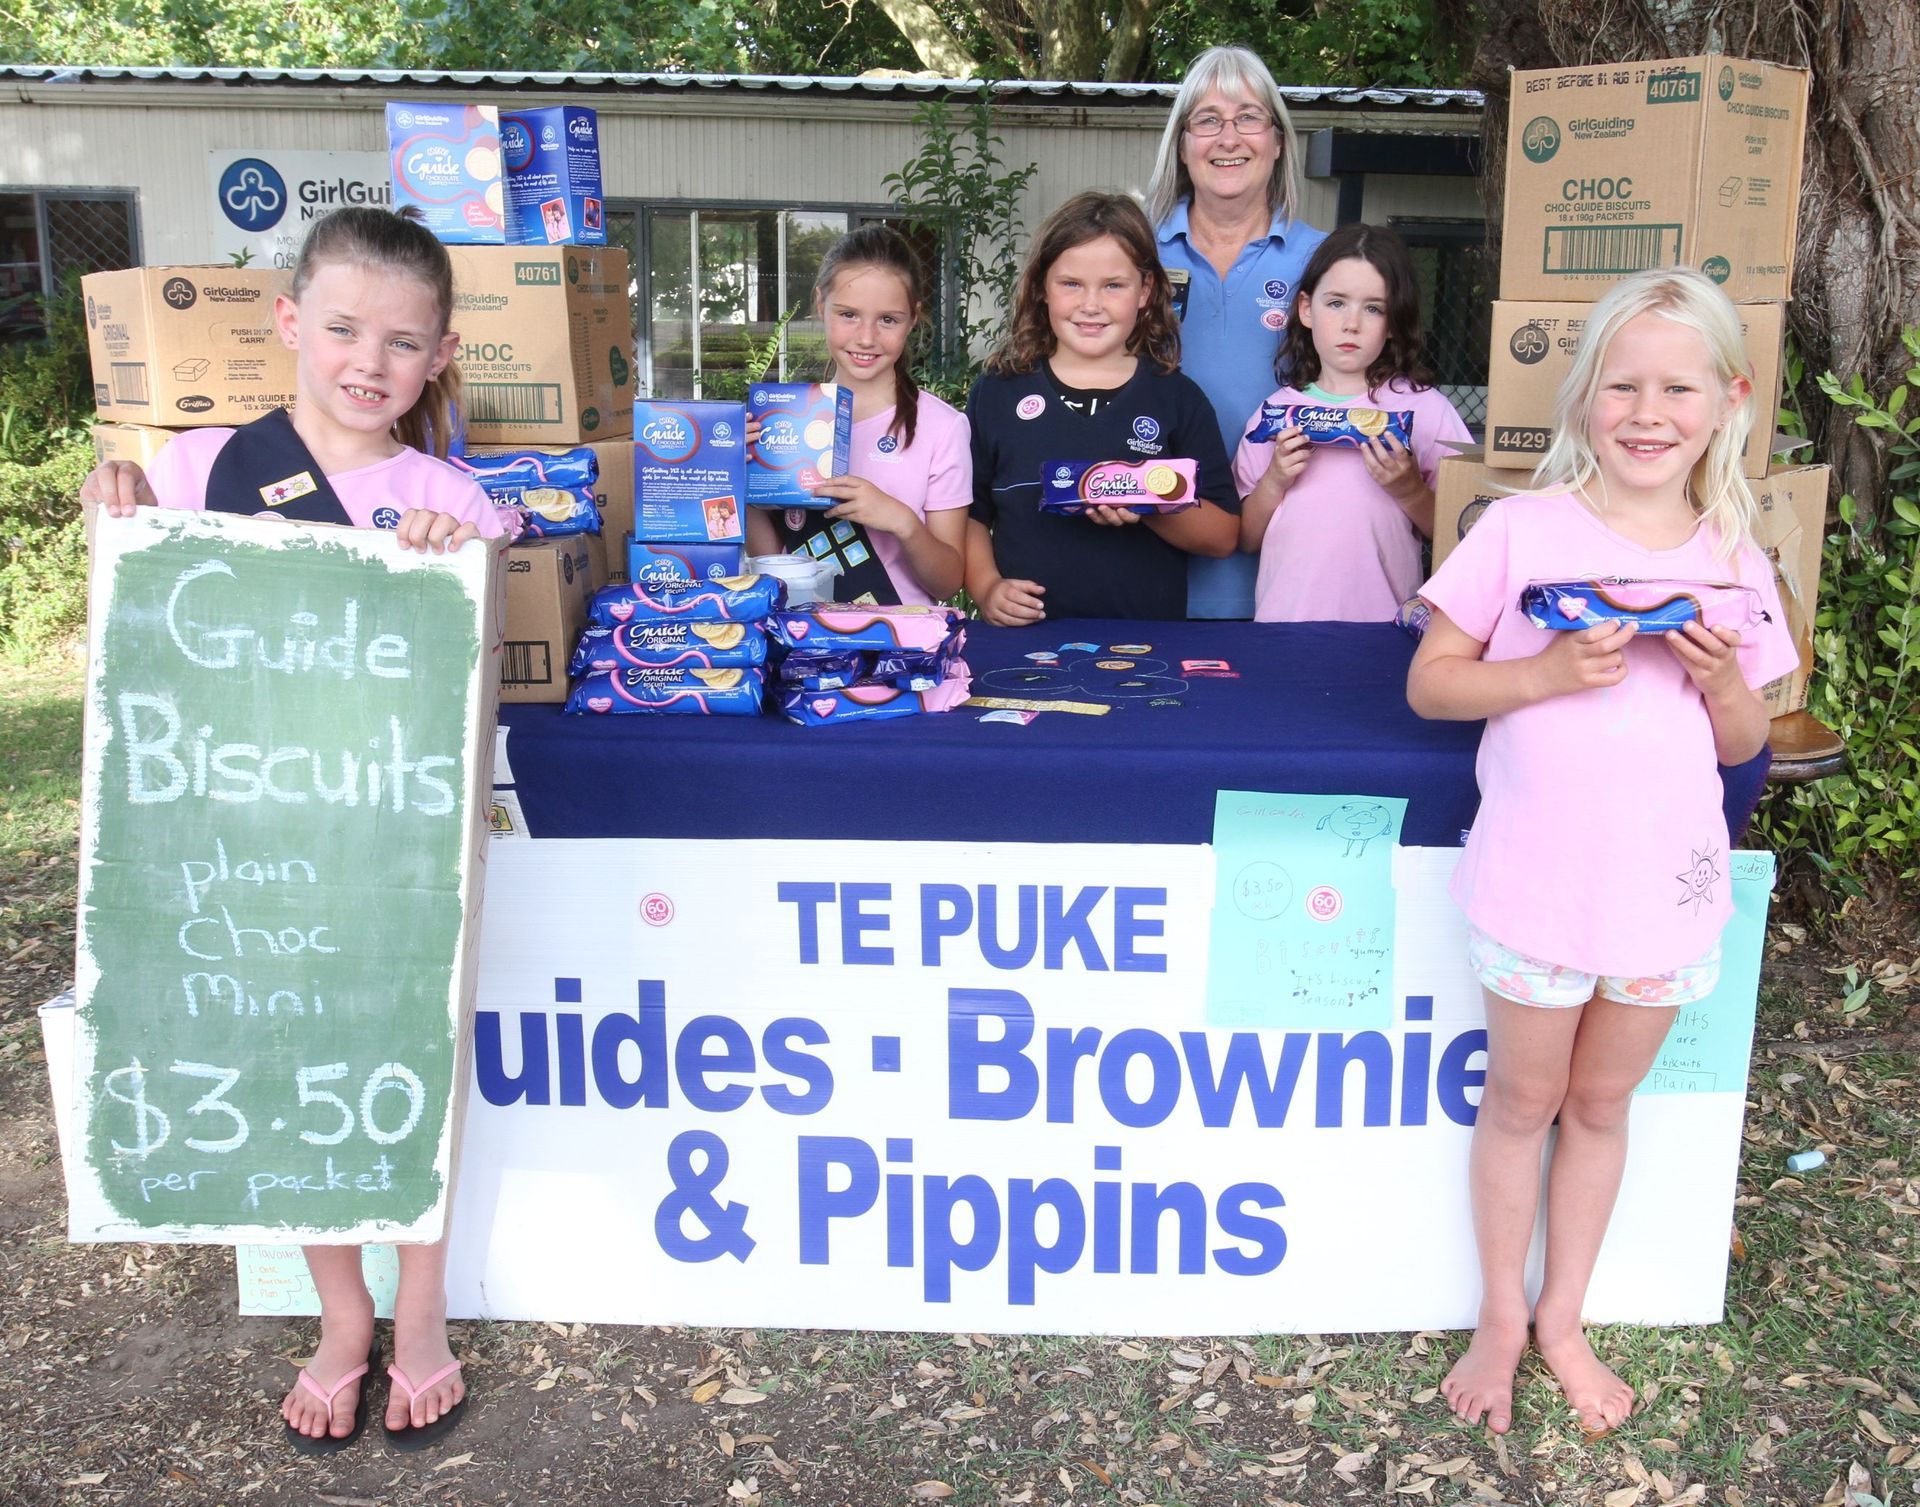 End of an era: Girl Guide biscuits go on sale for the last time in New Zealand